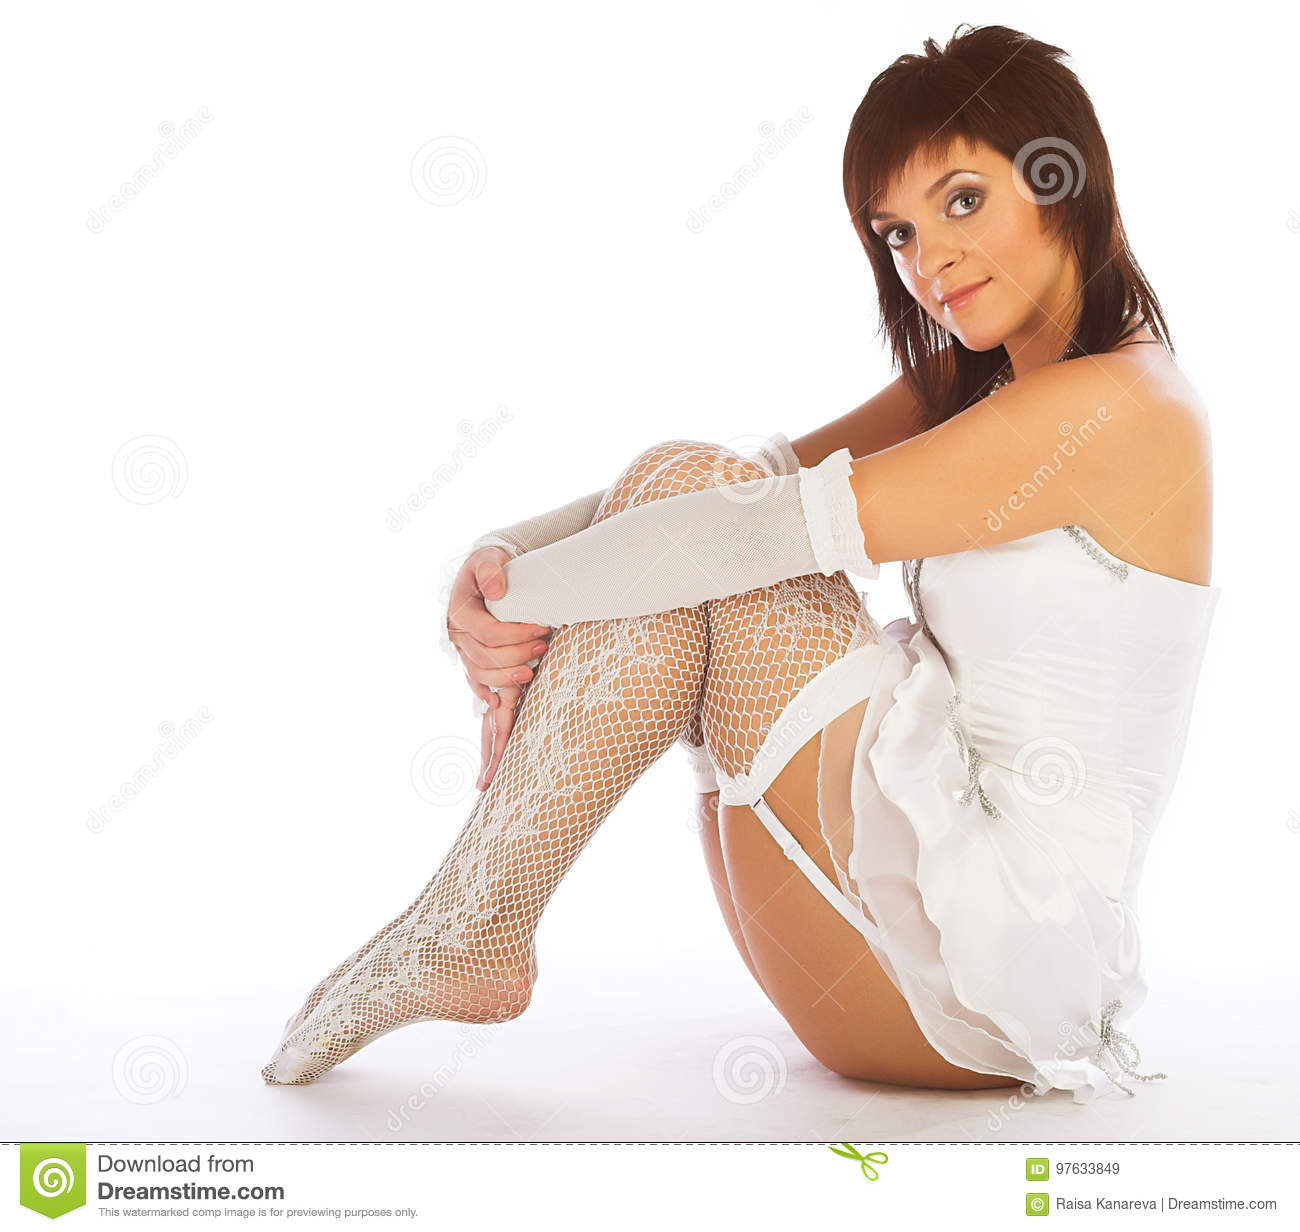 Woman in white lingerie stock image. Image of cute 252594c24